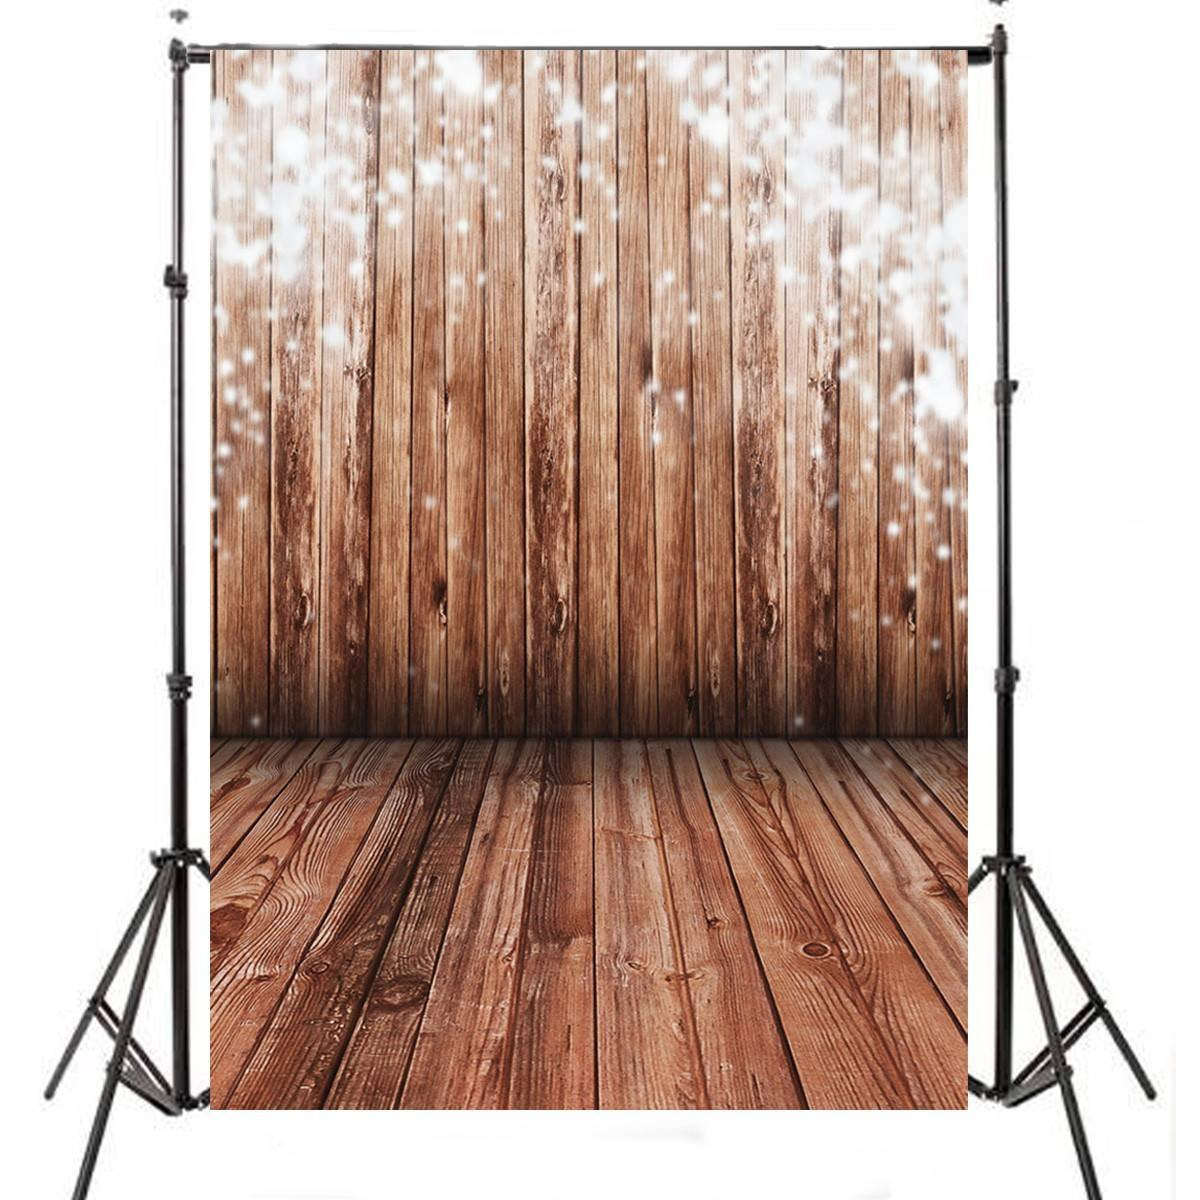 5x7FT Wood Wall Vinyl Photography Backdrop Photo Background Studio Props High Quality New Best Price retro letter paper background baby photo studio props photography backdrops vinyl 5x7ft or 3x5ft wooden floor